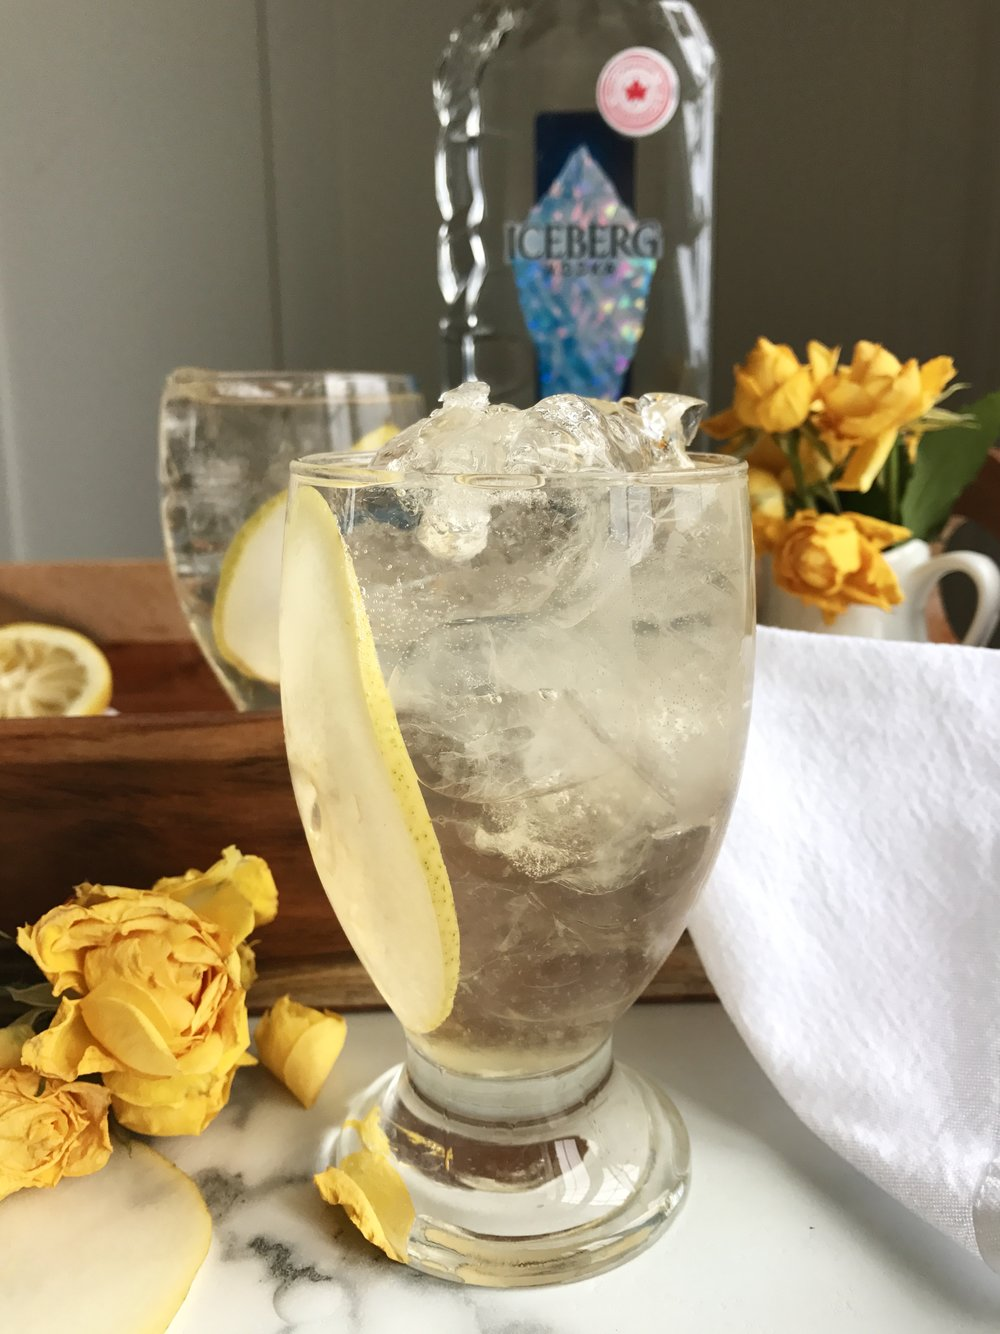 pear iceberg vodka cocktail lemoncello